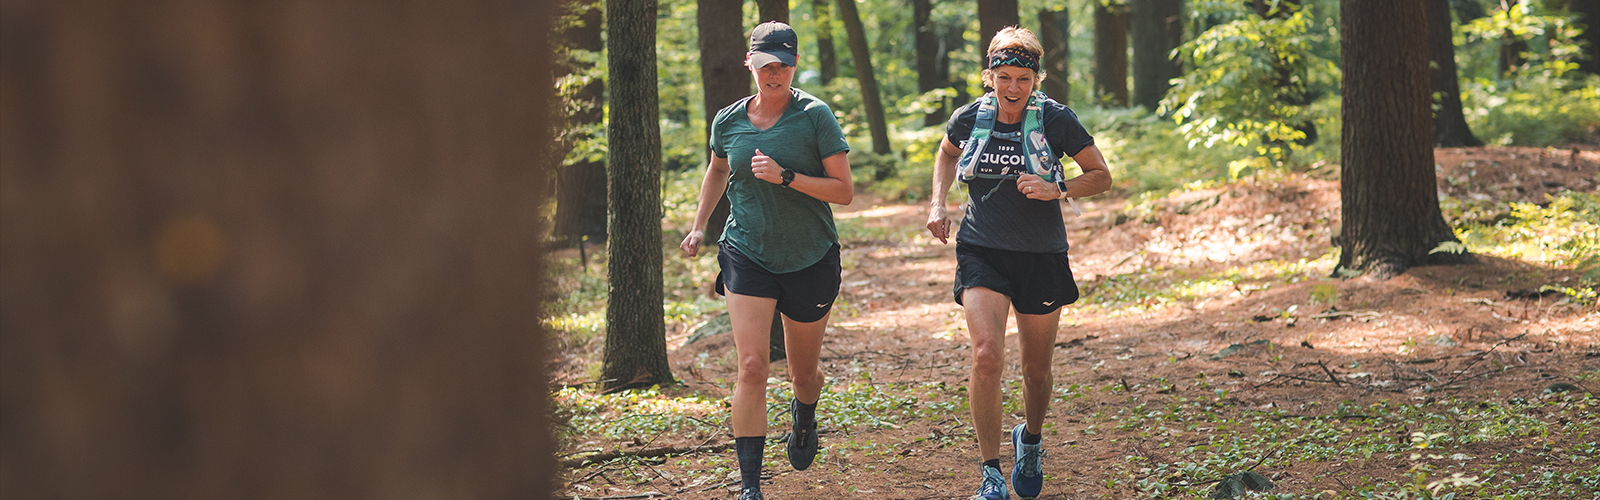 Two female runners enjoying a run on a forested trail.